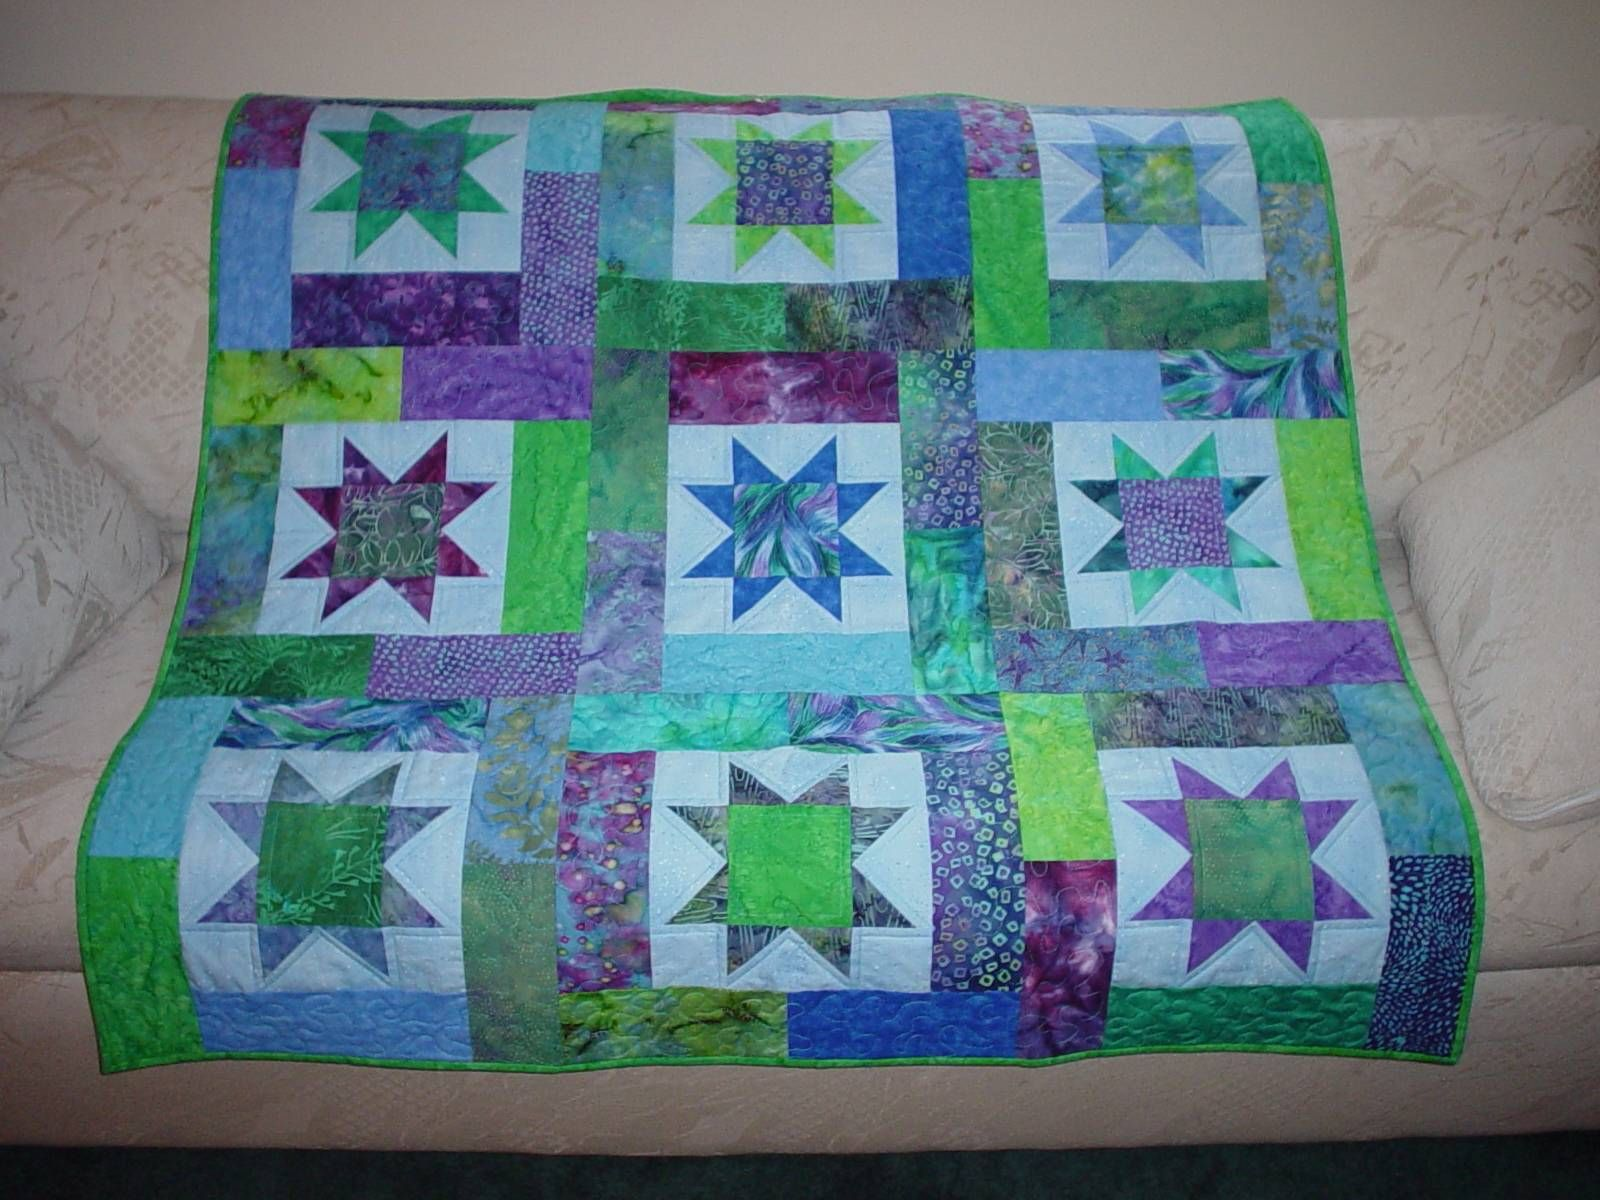 quilt patterns | Baby quilt patterns are one of the most popular ... : lucky star quilt pattern - Adamdwight.com